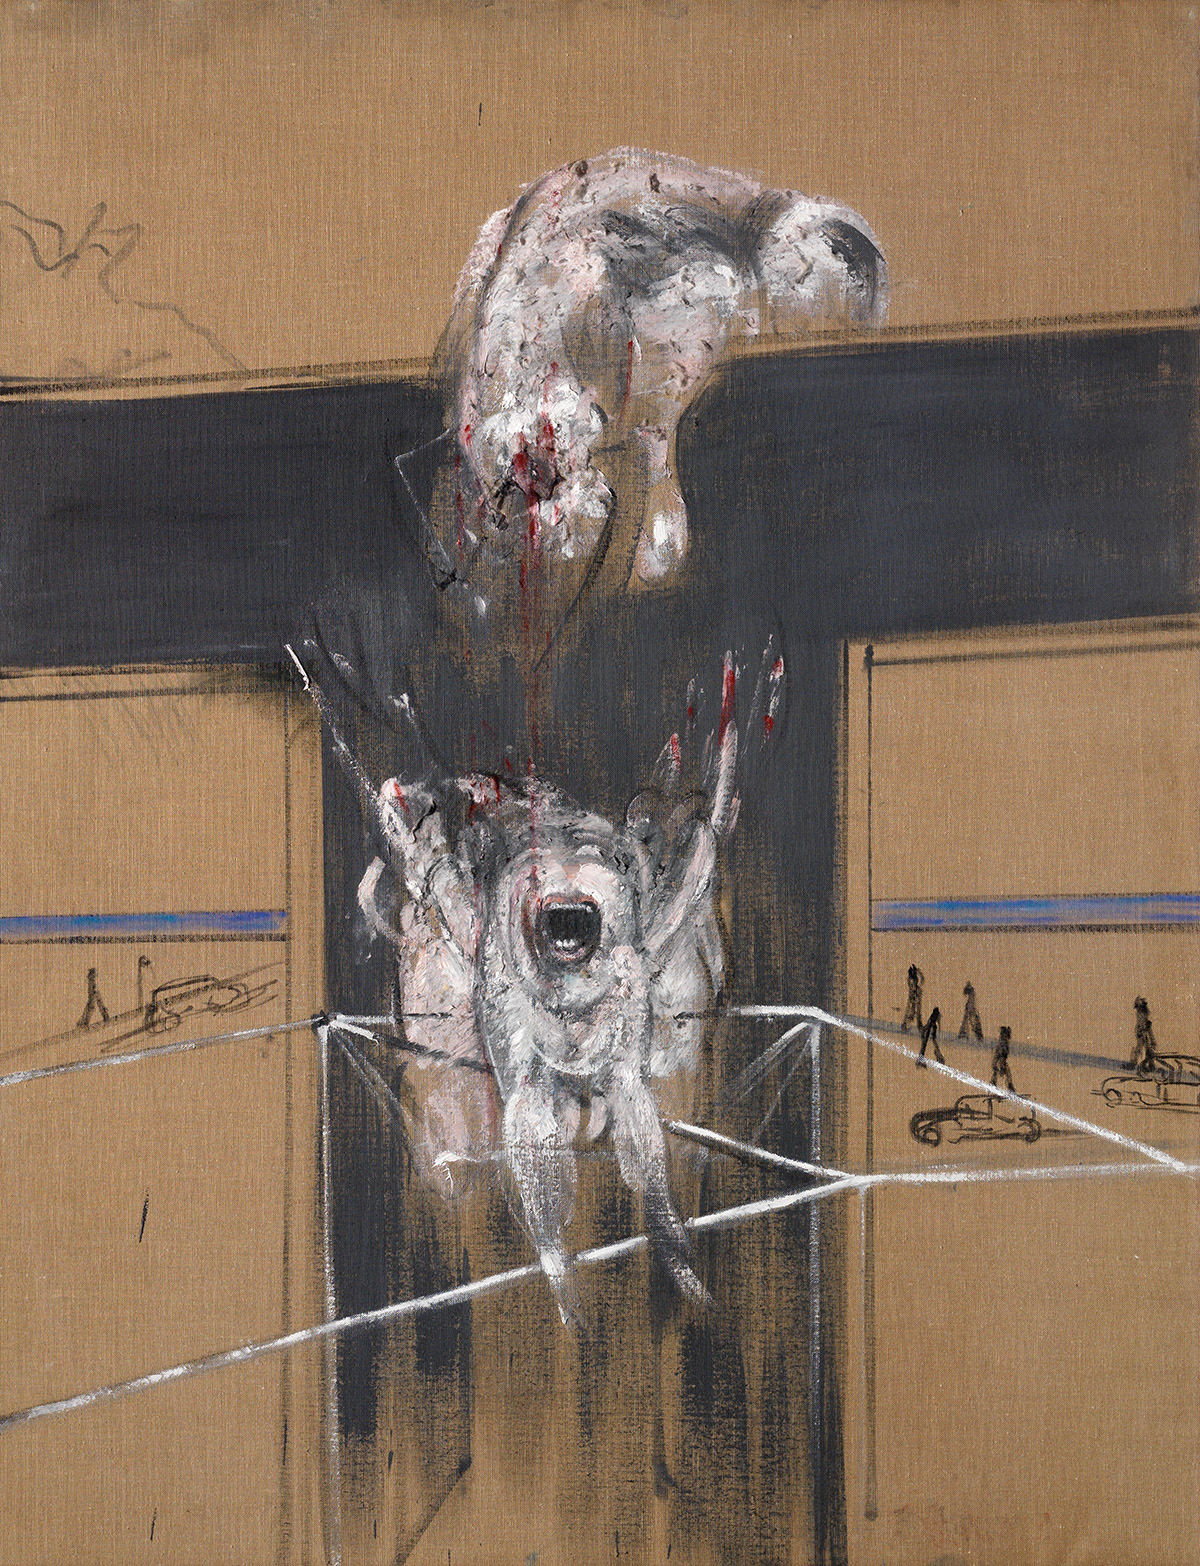 Francis Bacon, Fragment of a Crucifixion, 1950. Oil and cotton wool on canvas. CR number 50- 02. © The Estate of Francis Bacon / DACS London 2020. All rights reserved.